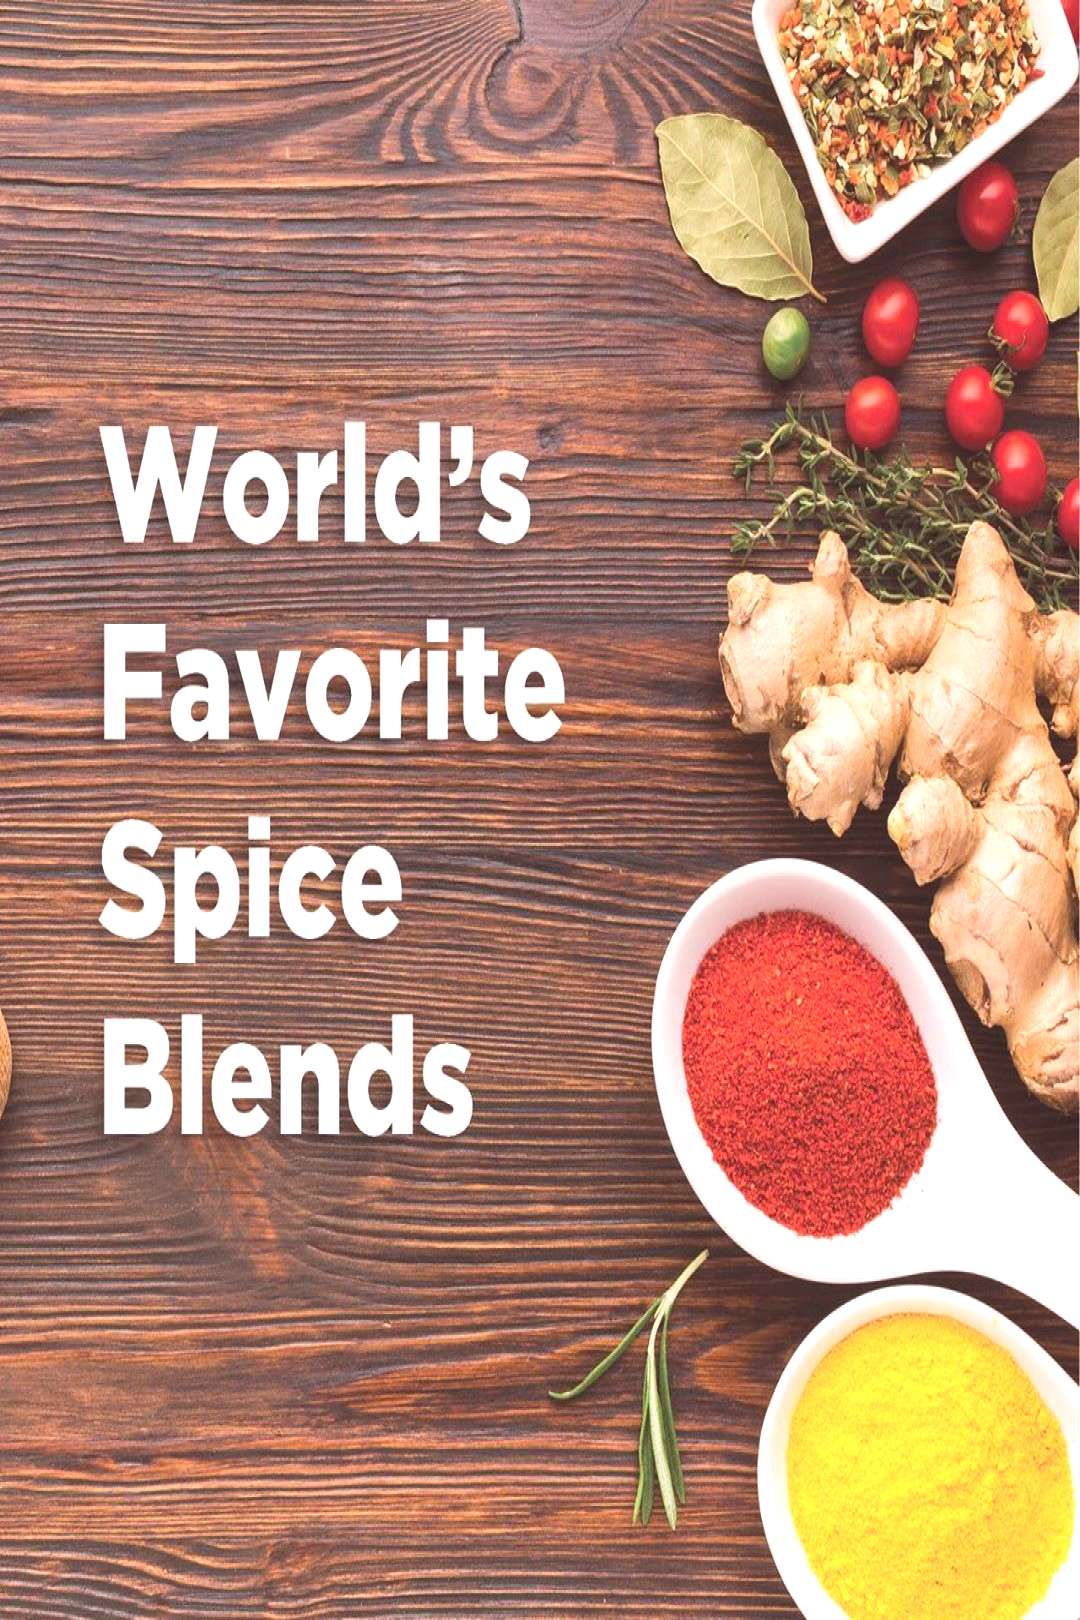 food possible text that says Worlds Favorite Spice Blends